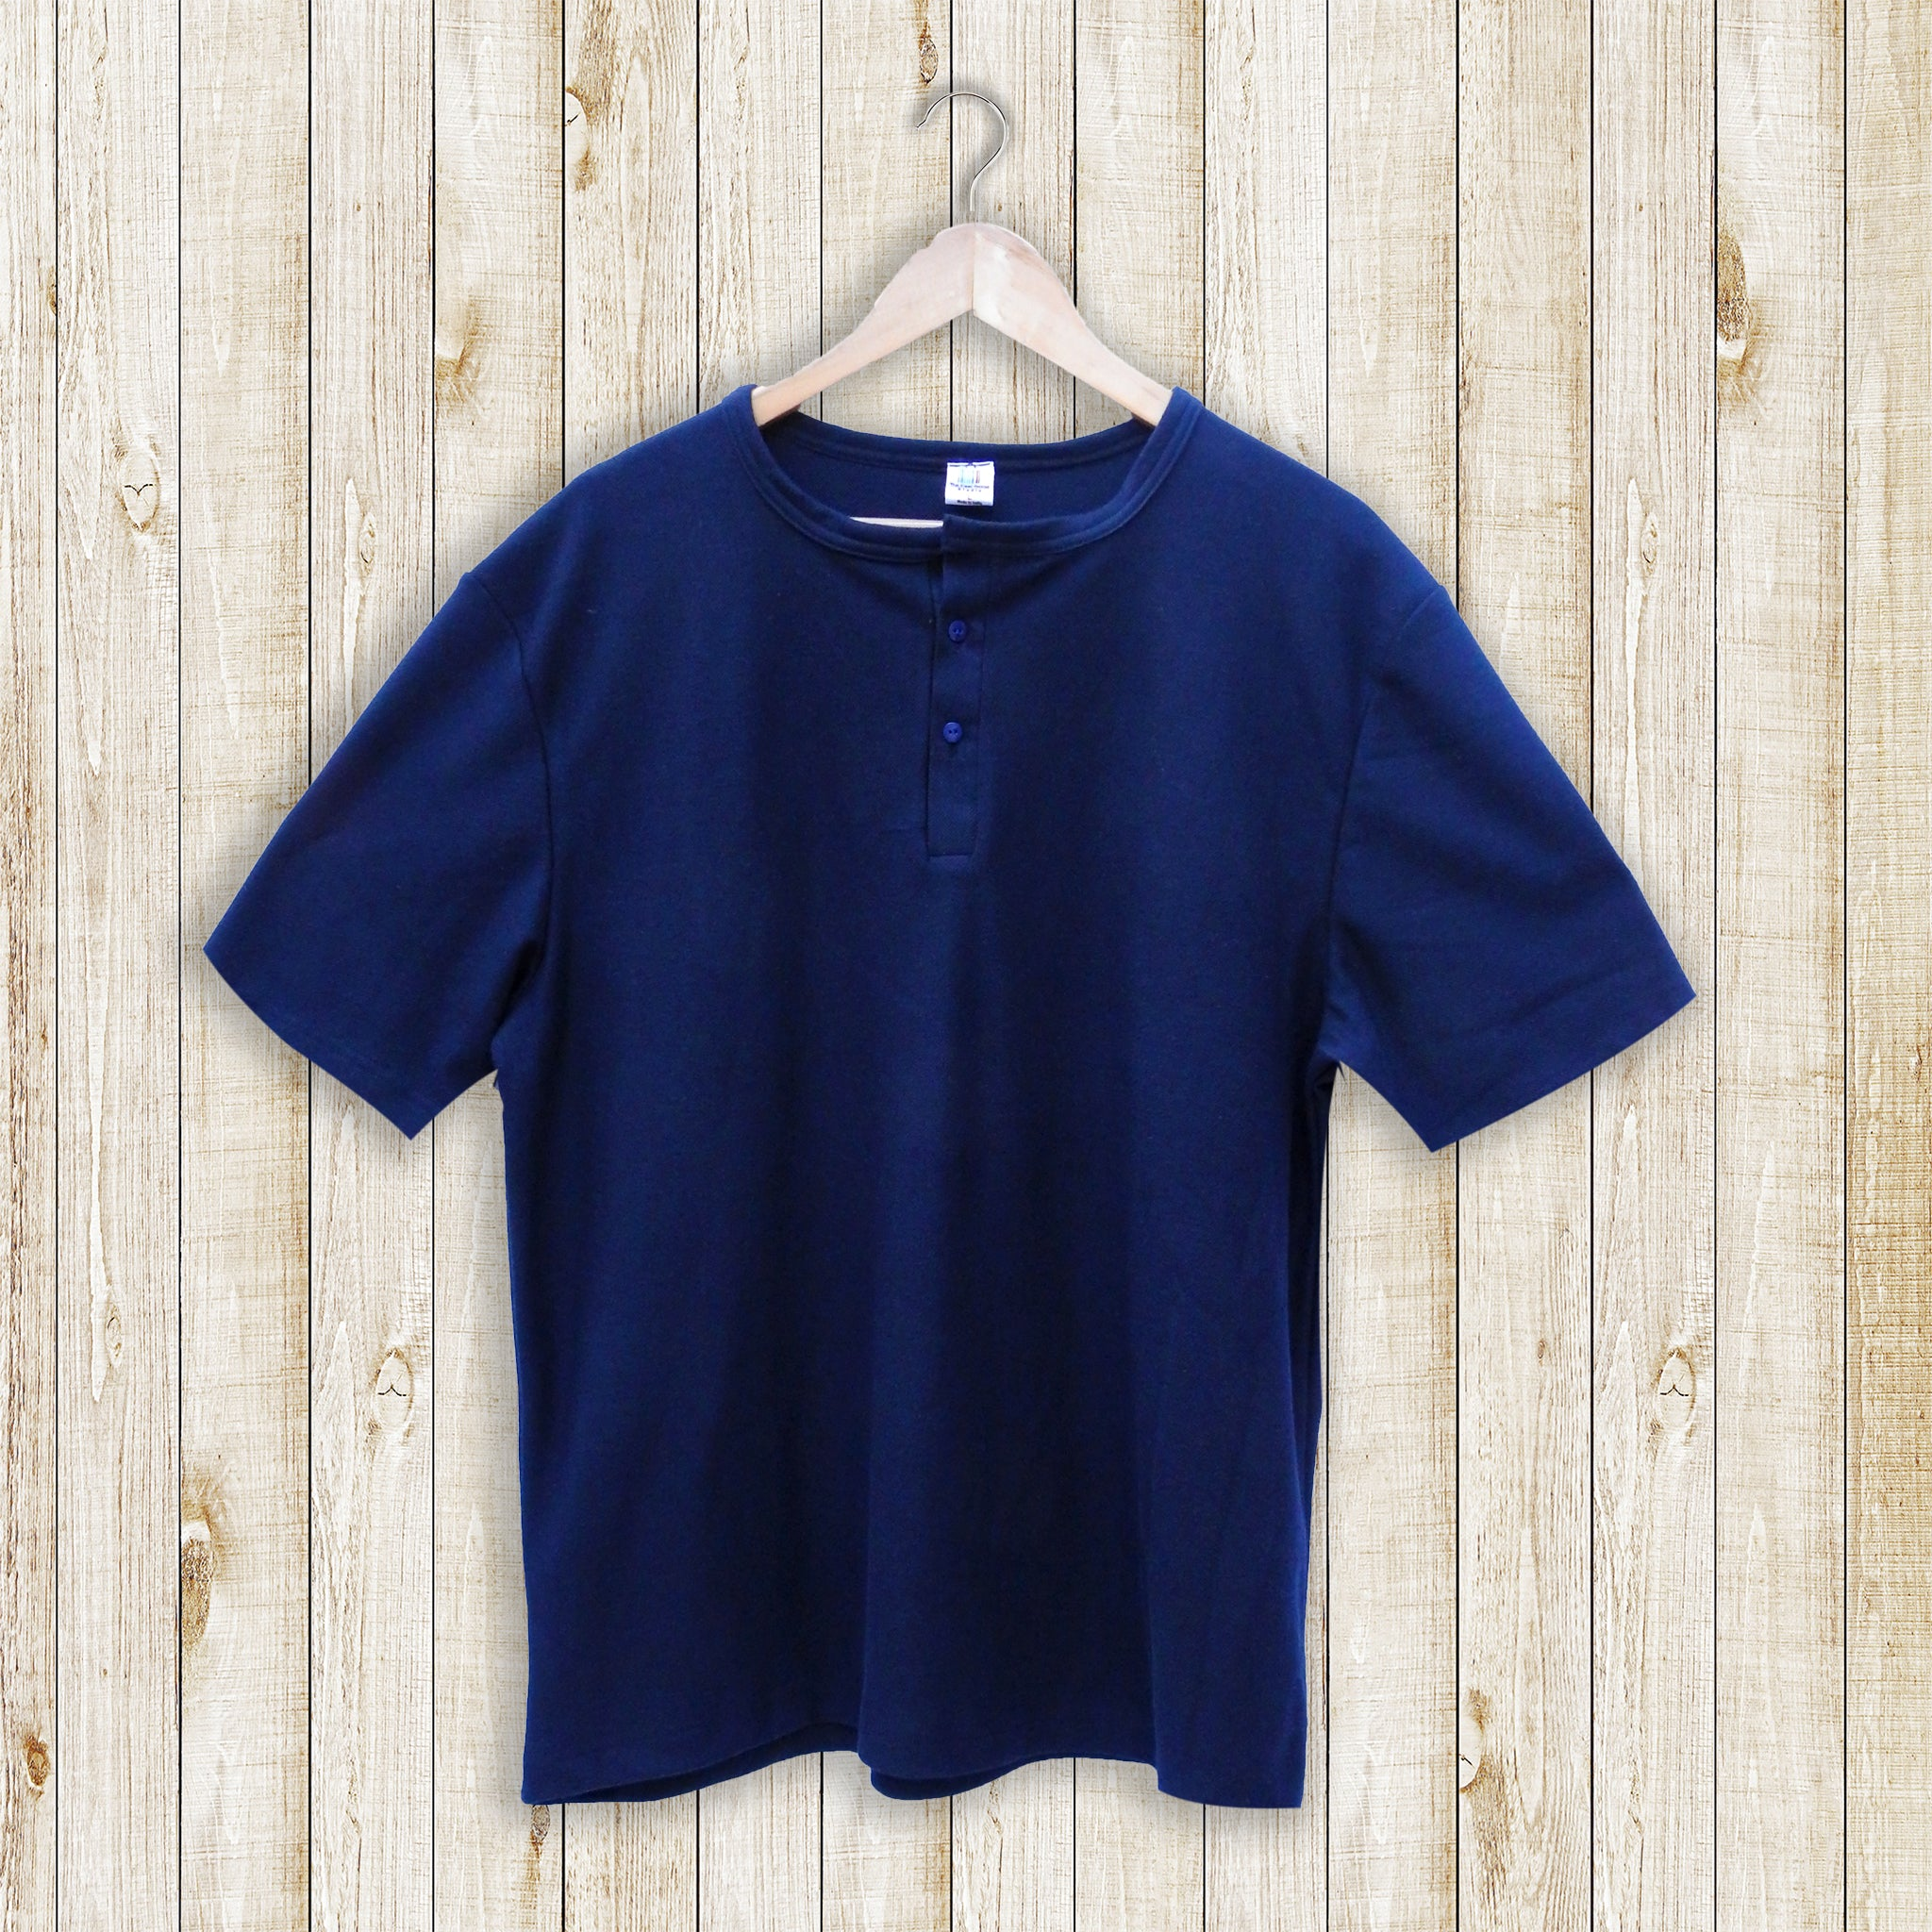 Navy Blue Men's T-shirt